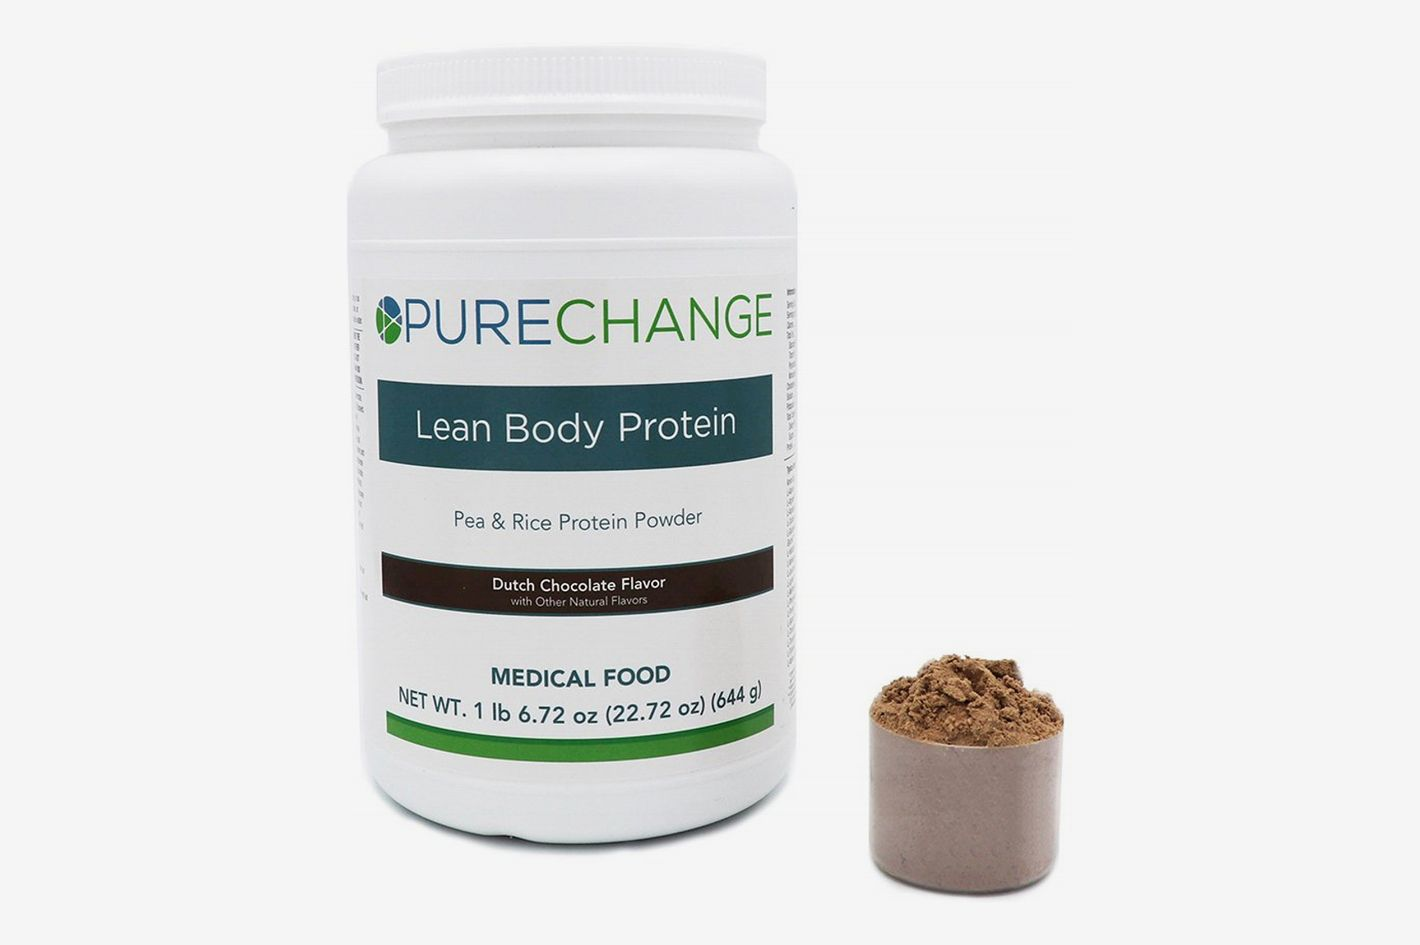 Pure Change Lean Body Protein